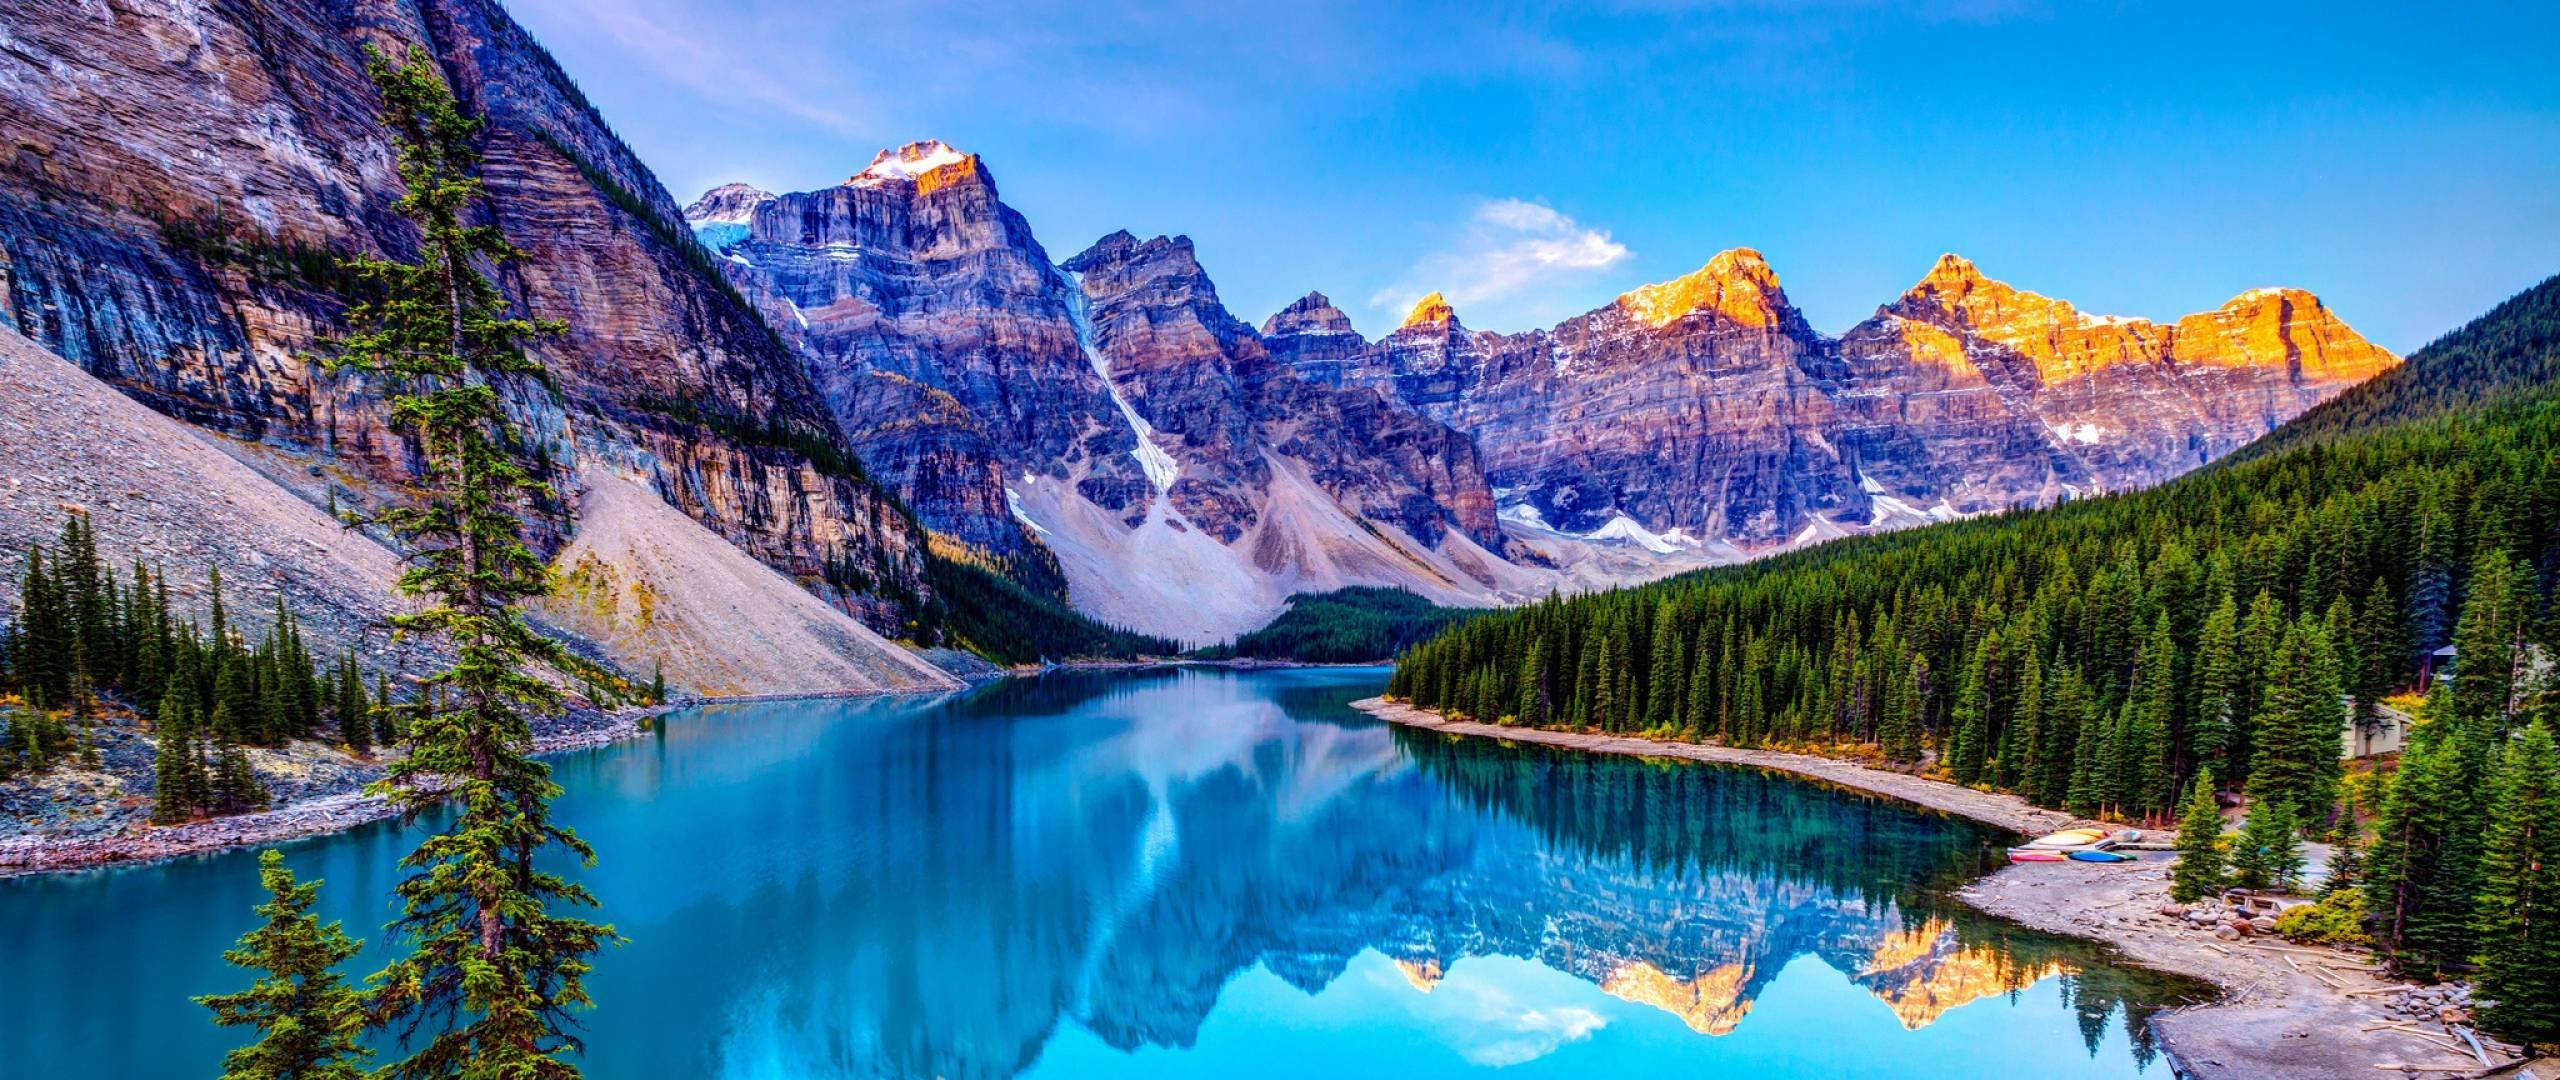 Lake Moraine Banff National Park wallpaper